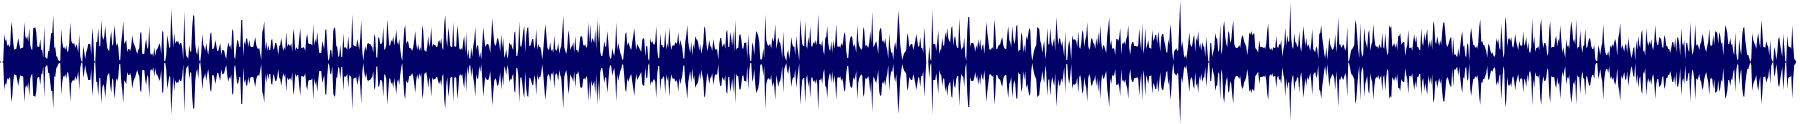 waveform of track #69459